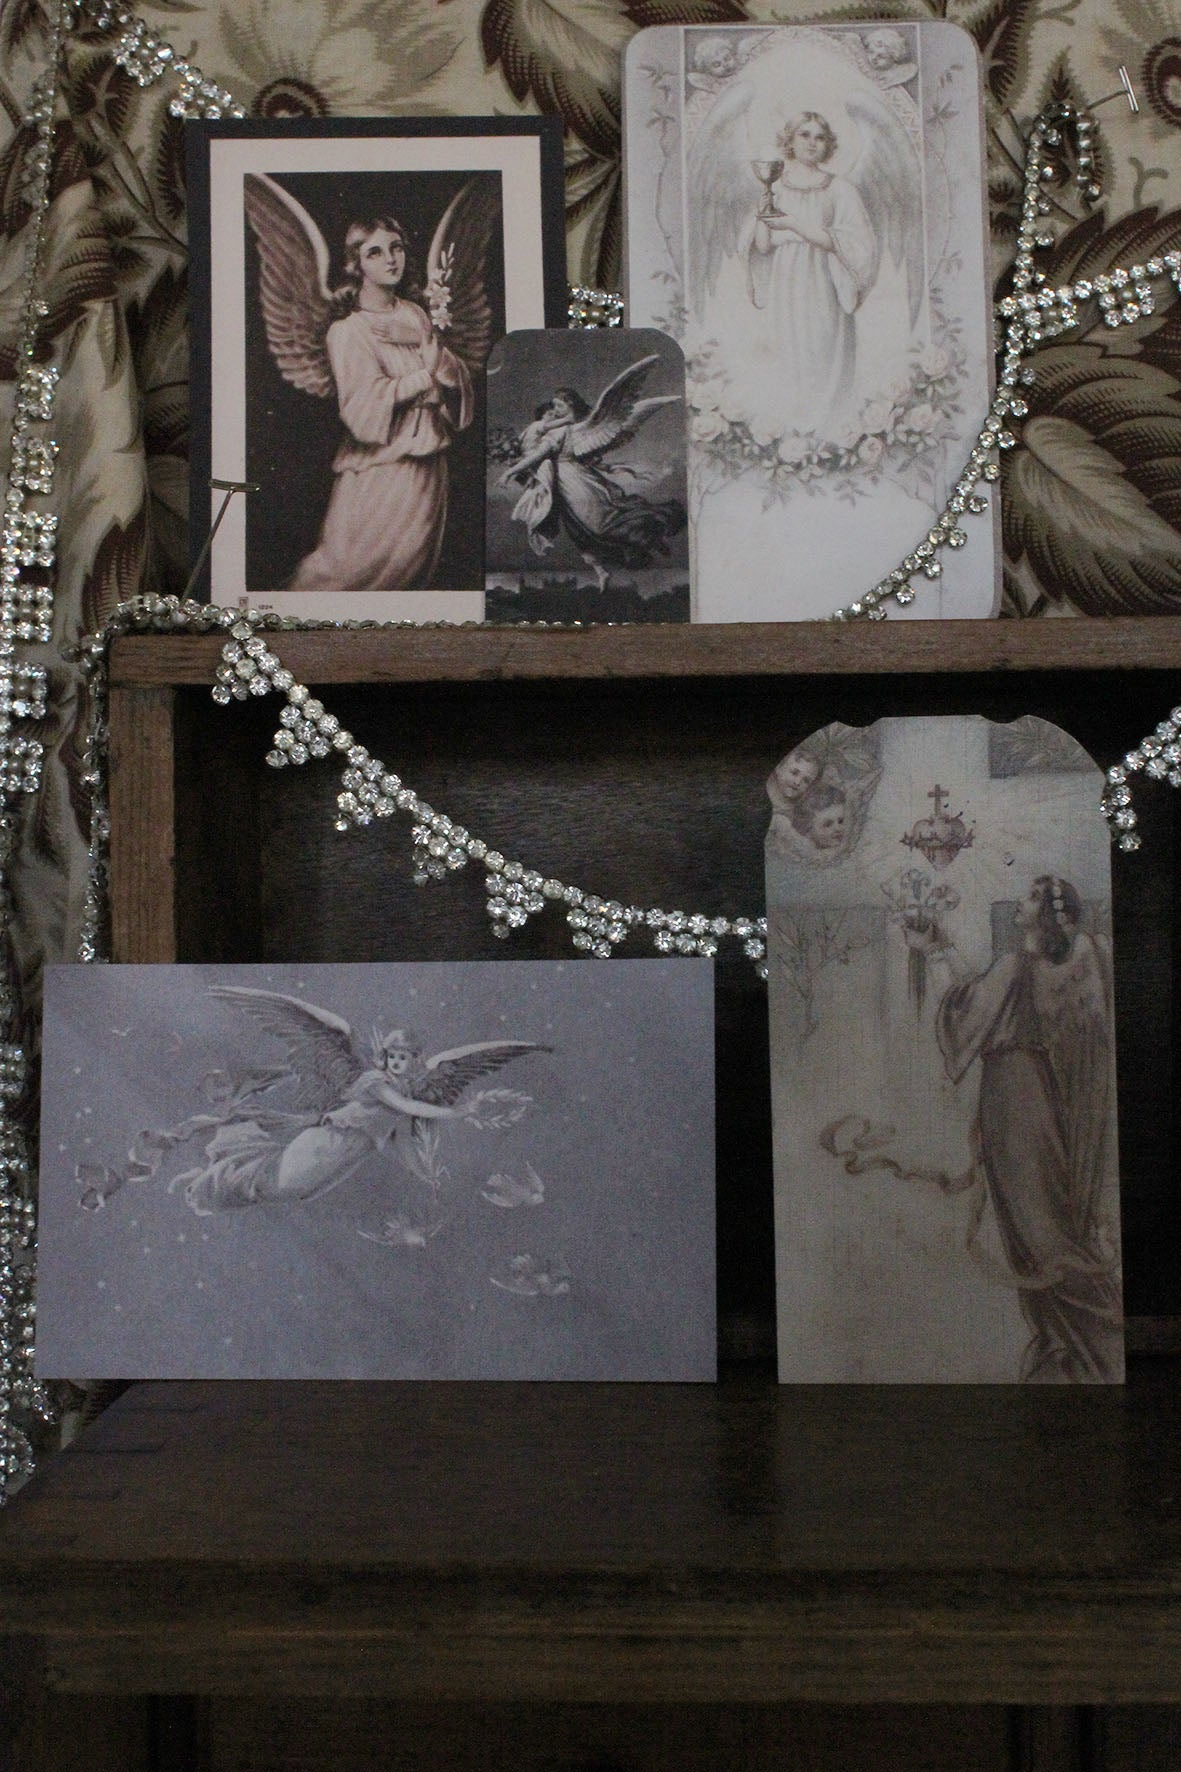 MANTLEPIECE CARDS - ANGELS